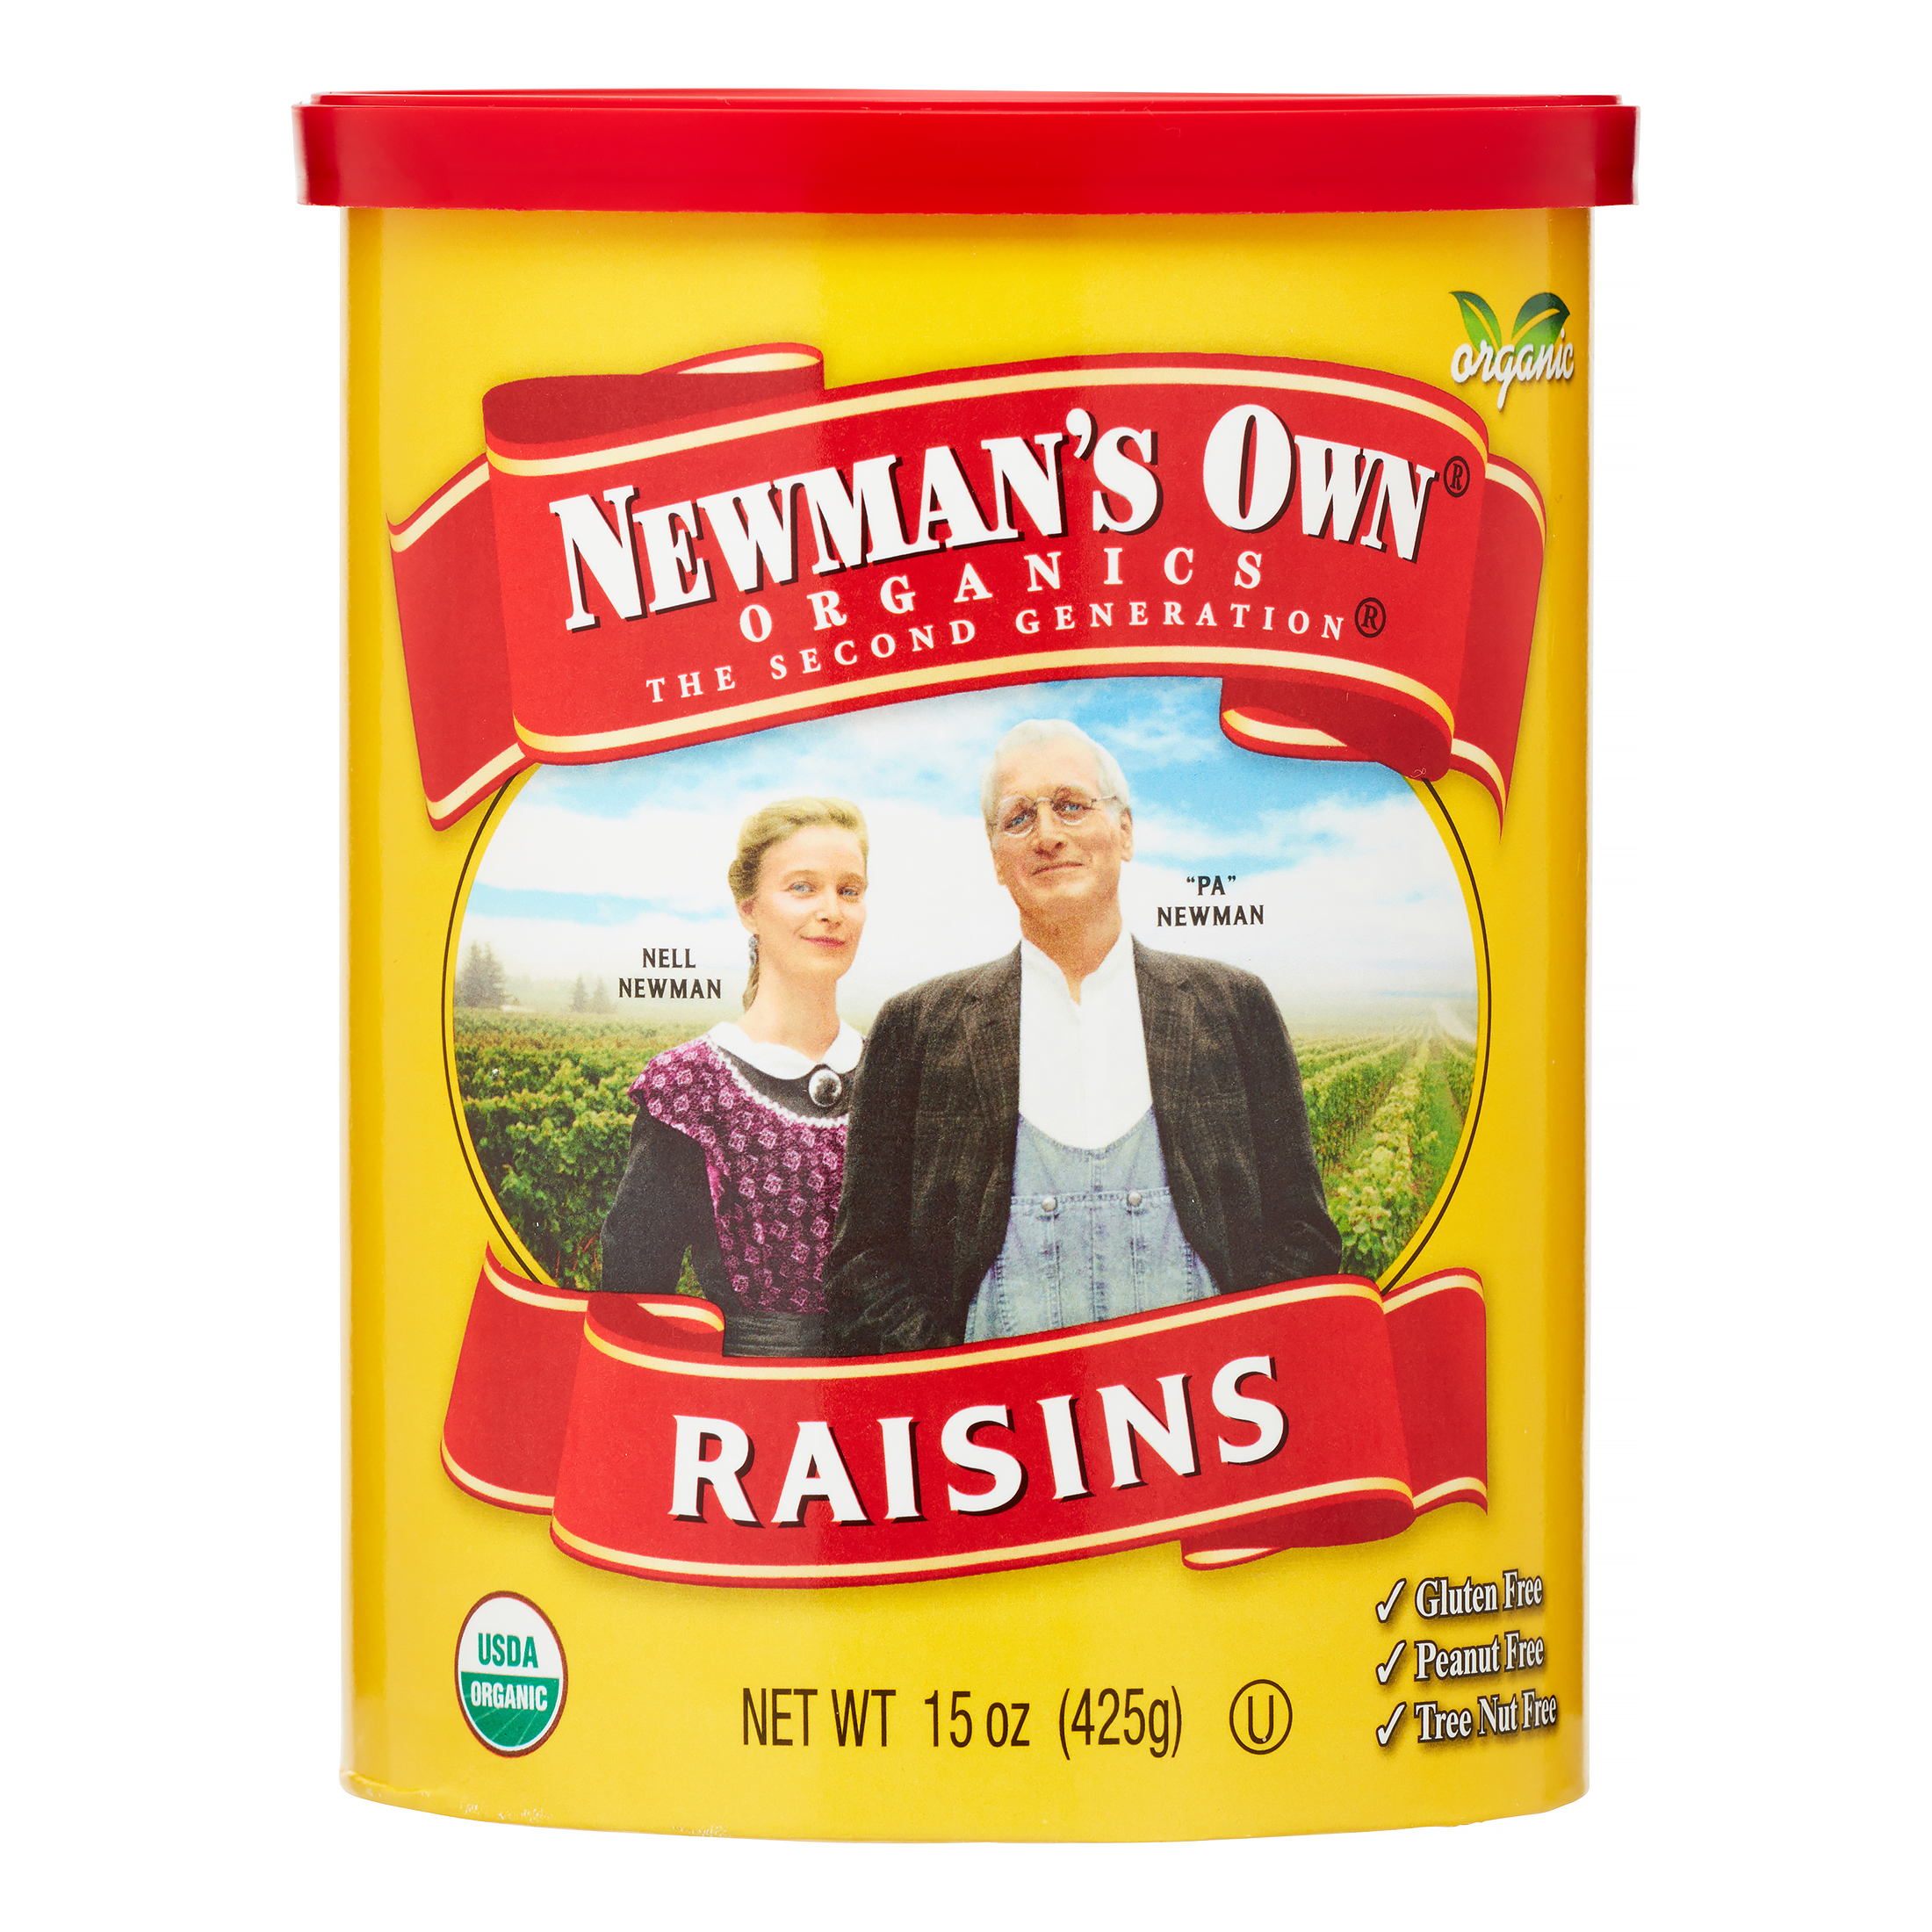 Newman's Own Organics California Raisins, 15 Oz, 1 Count